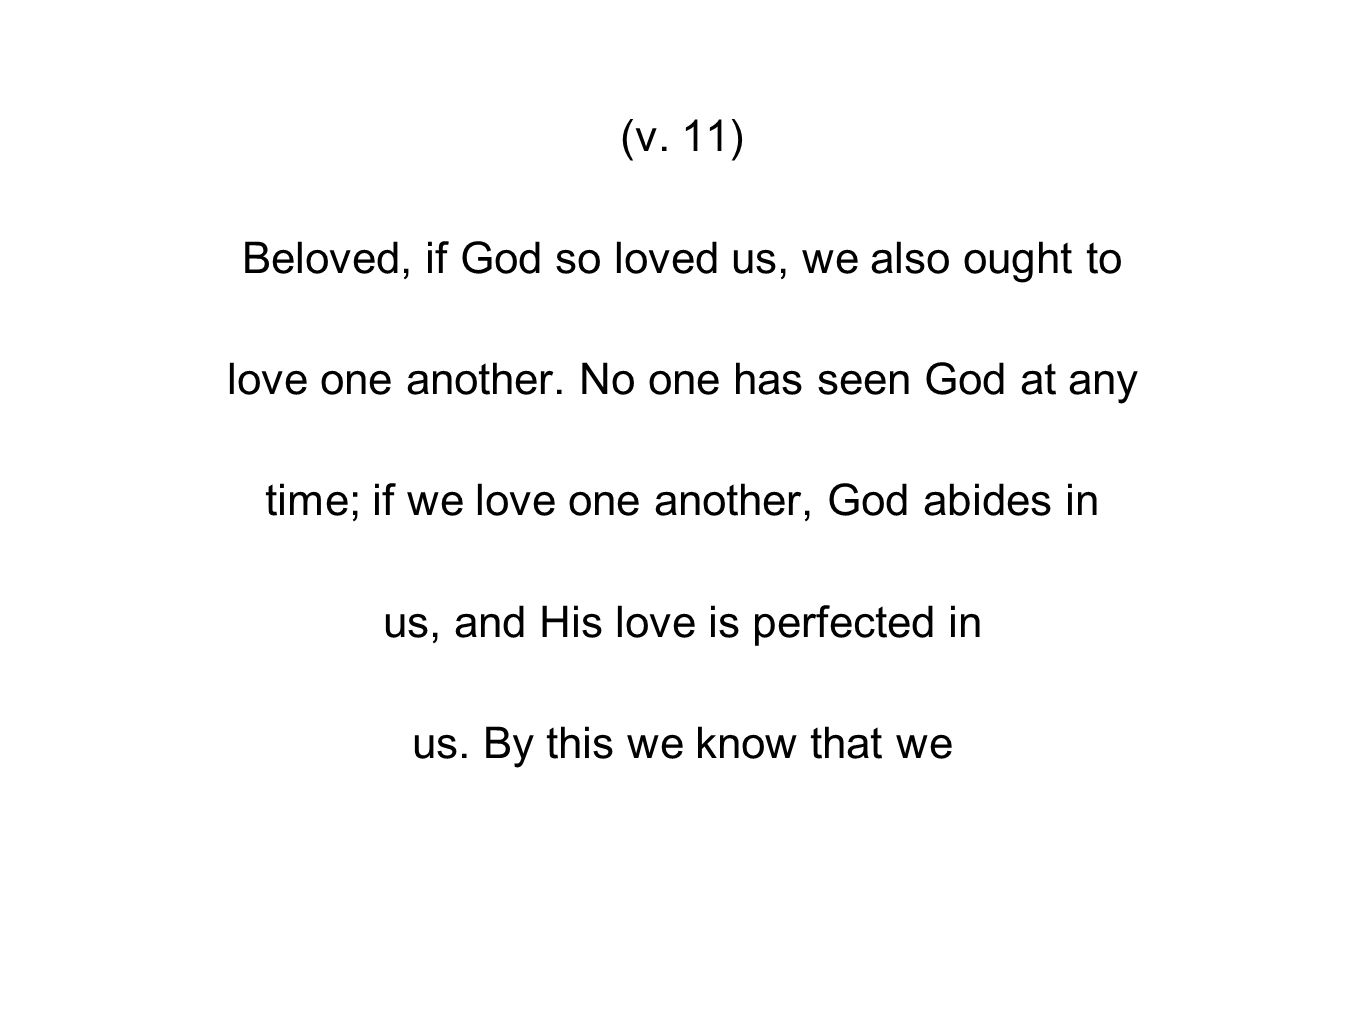 (v. 11) Beloved, if God so loved us, we also ought to love one another.